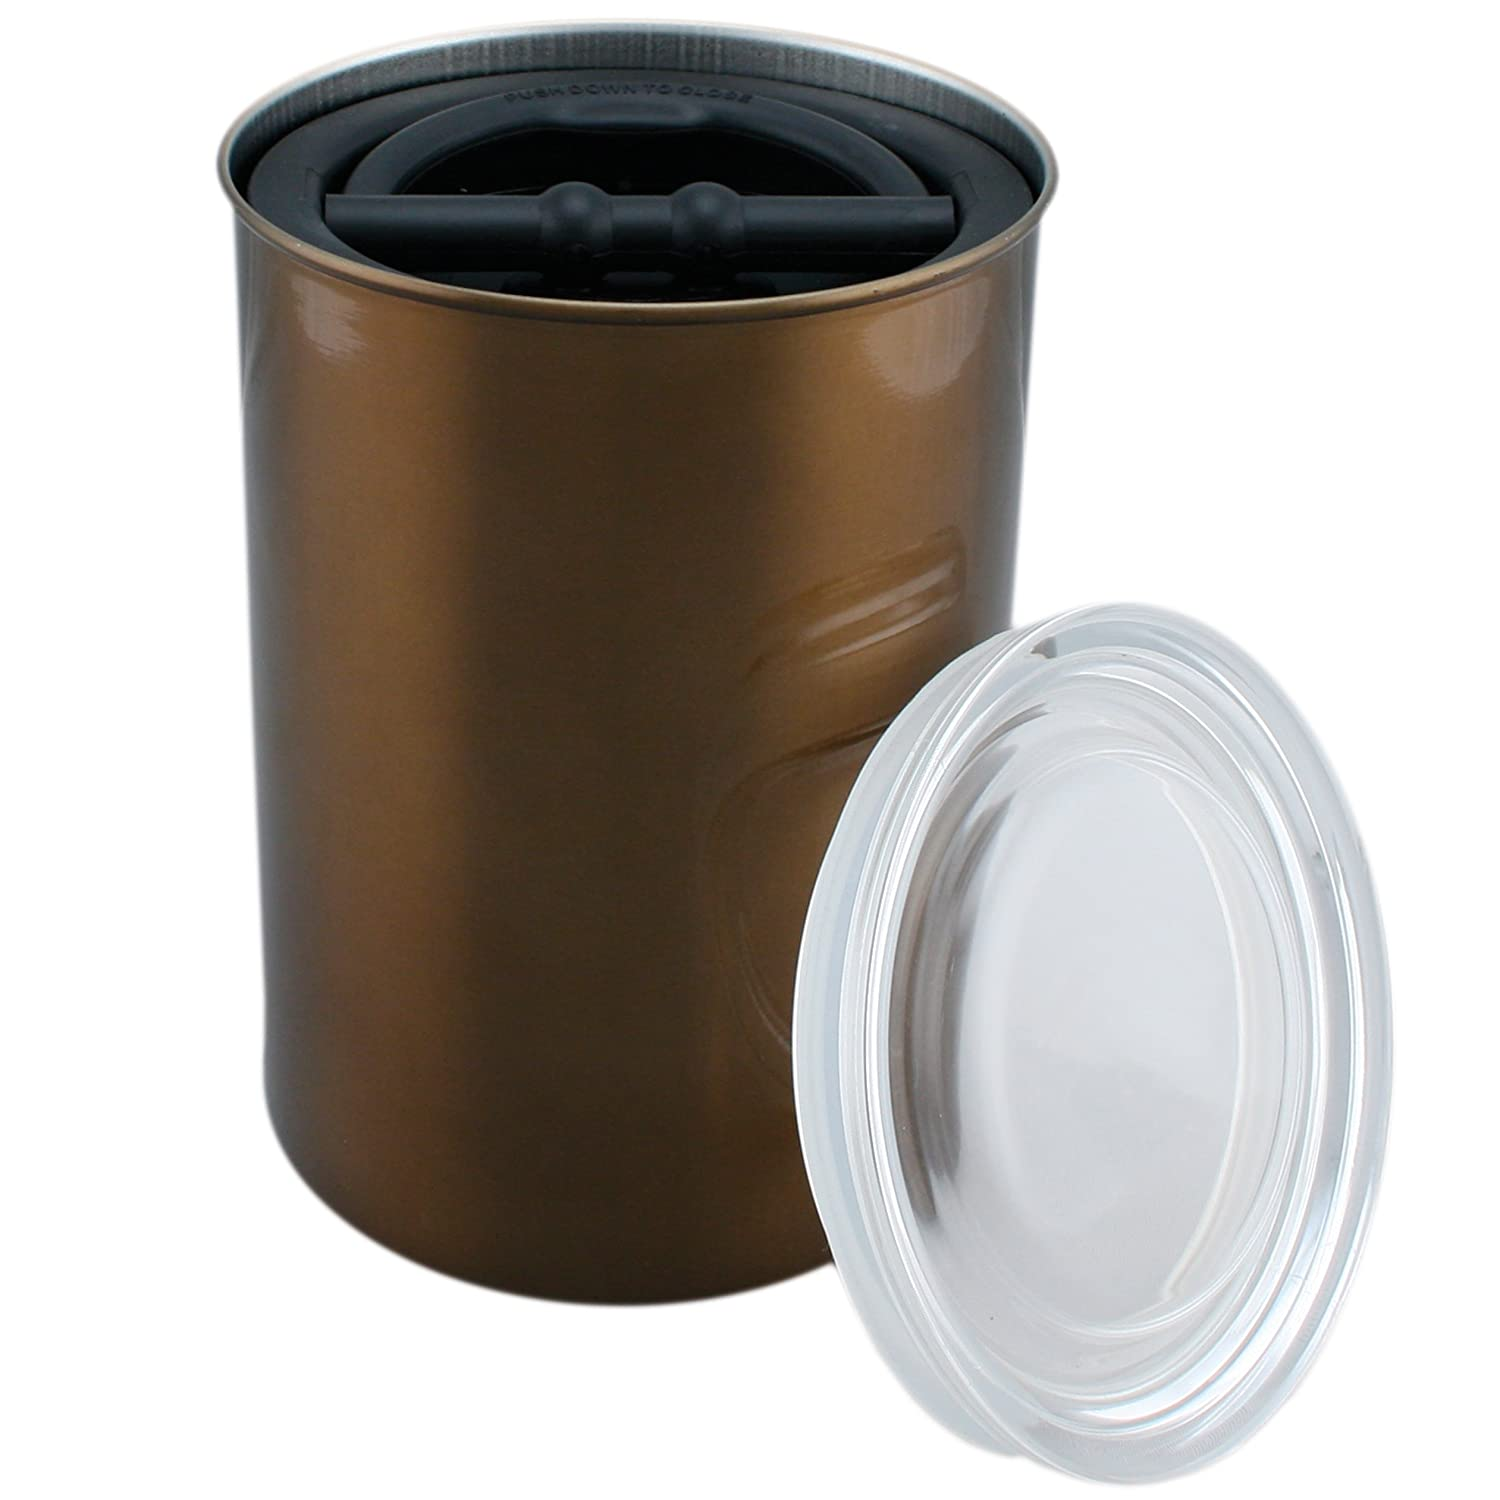 amazon com coffee storage canister airtight container preserves amazon com coffee storage canister airtight container preserves food freshness airscape steel 64 fl oz mocha french presses kitchen dining